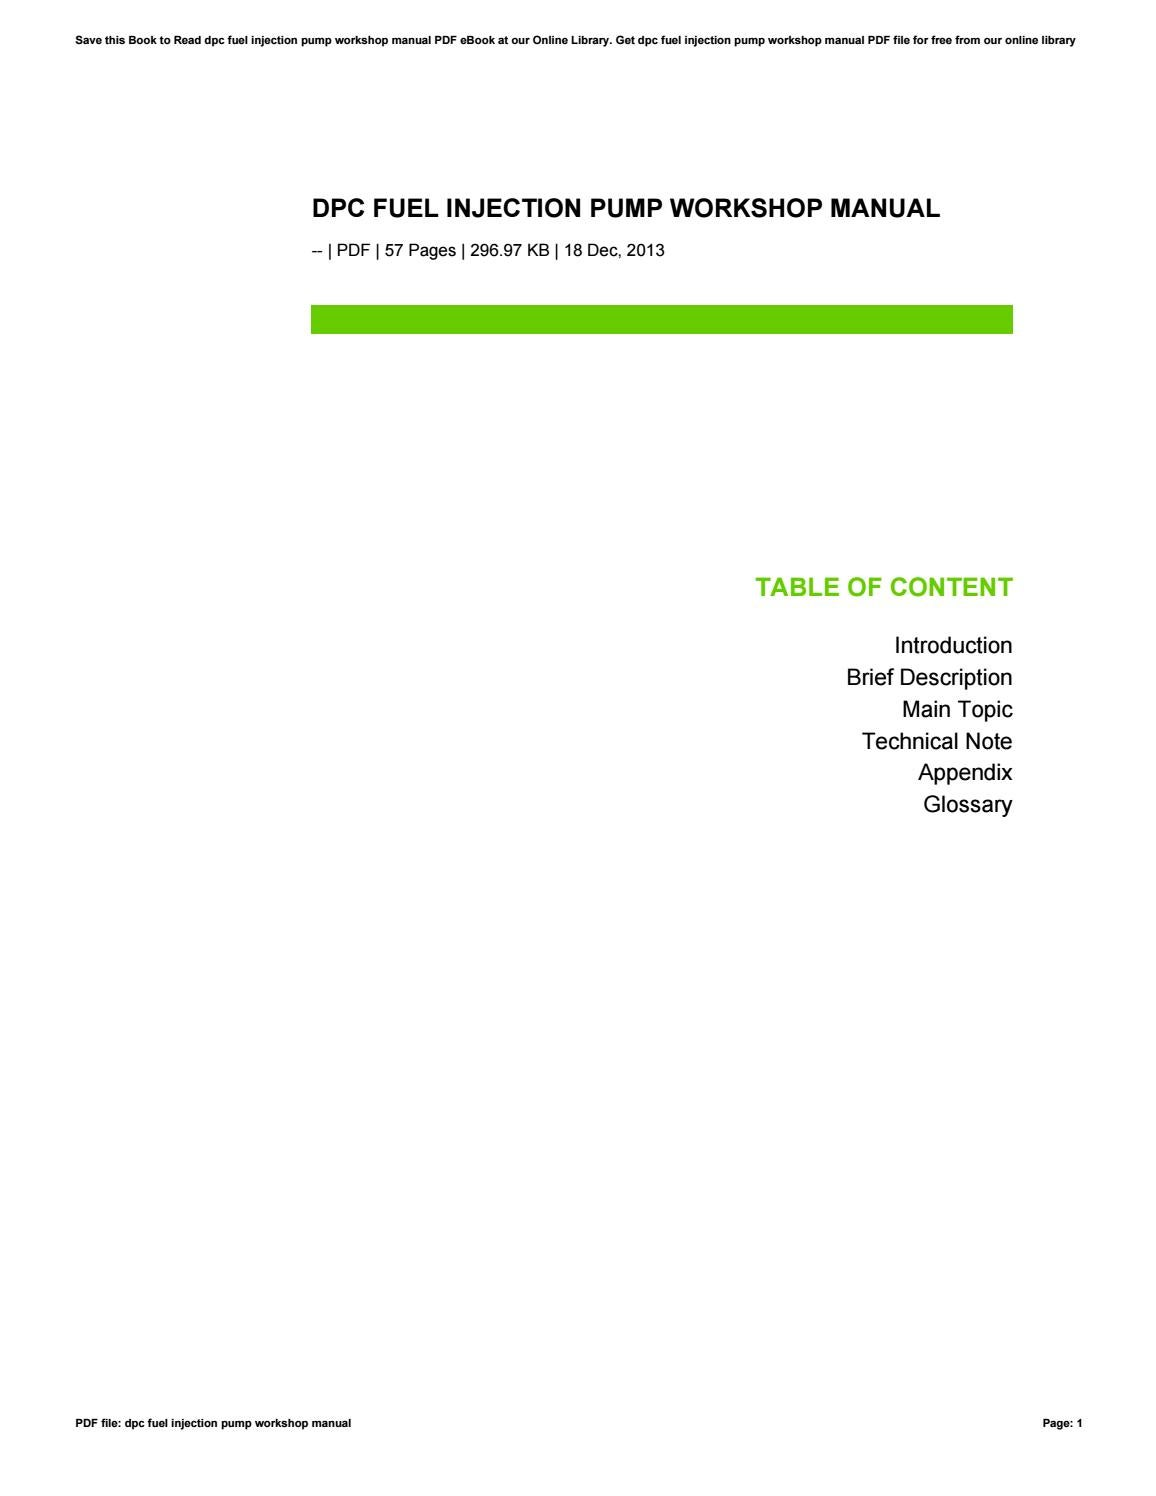 Snap on 185 mig manual ebook page 1 array service manual for a coleman powermate ebook rh service manual for a coleman powermate fandeluxe